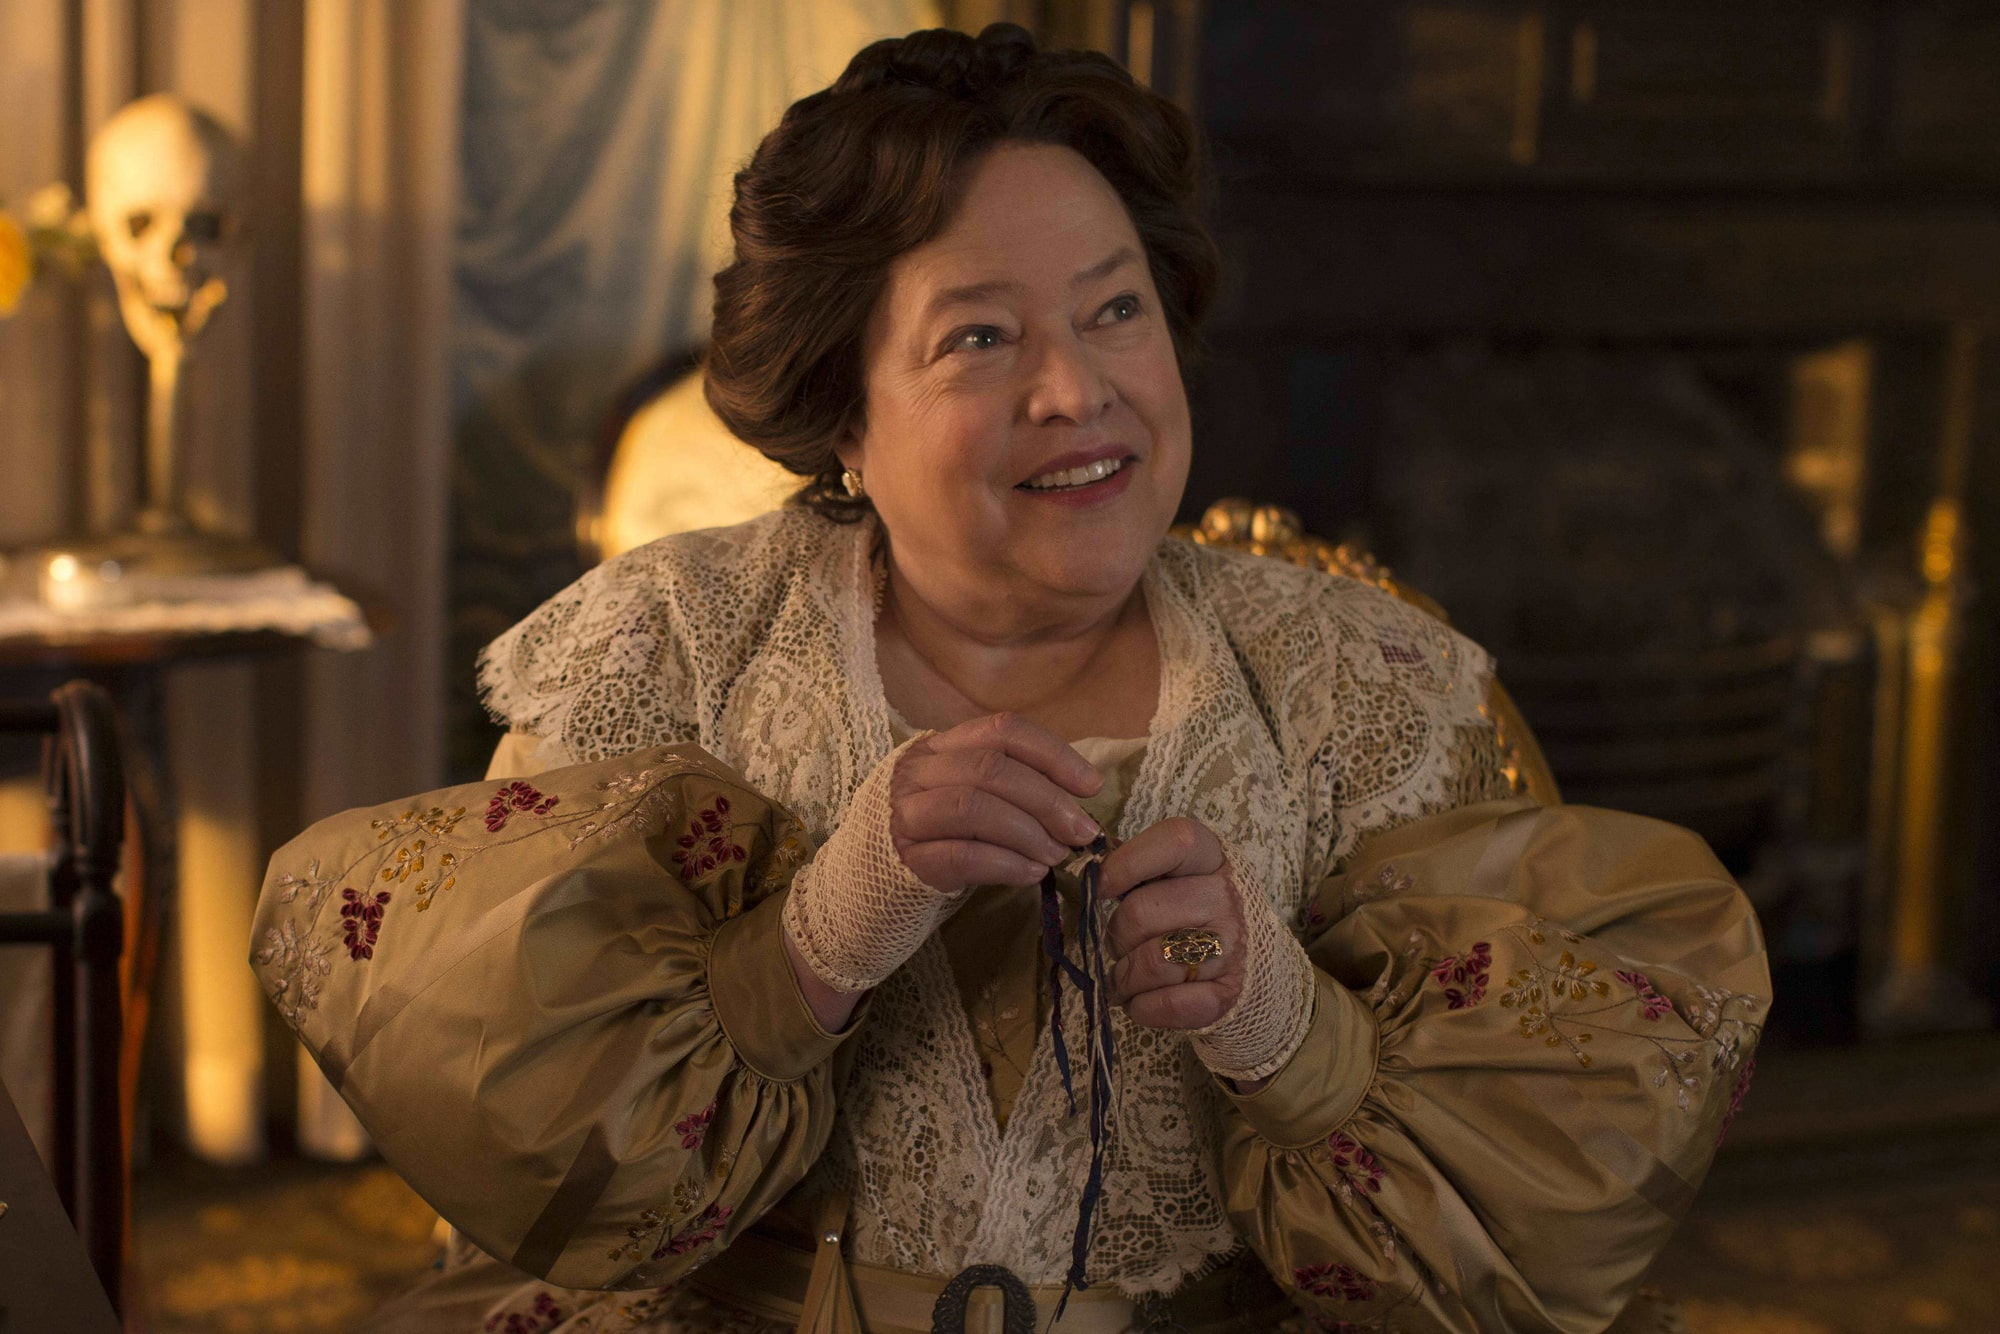 madame lalaurie delphine lalaurie american horror story coven kathy bates mundo sombrio